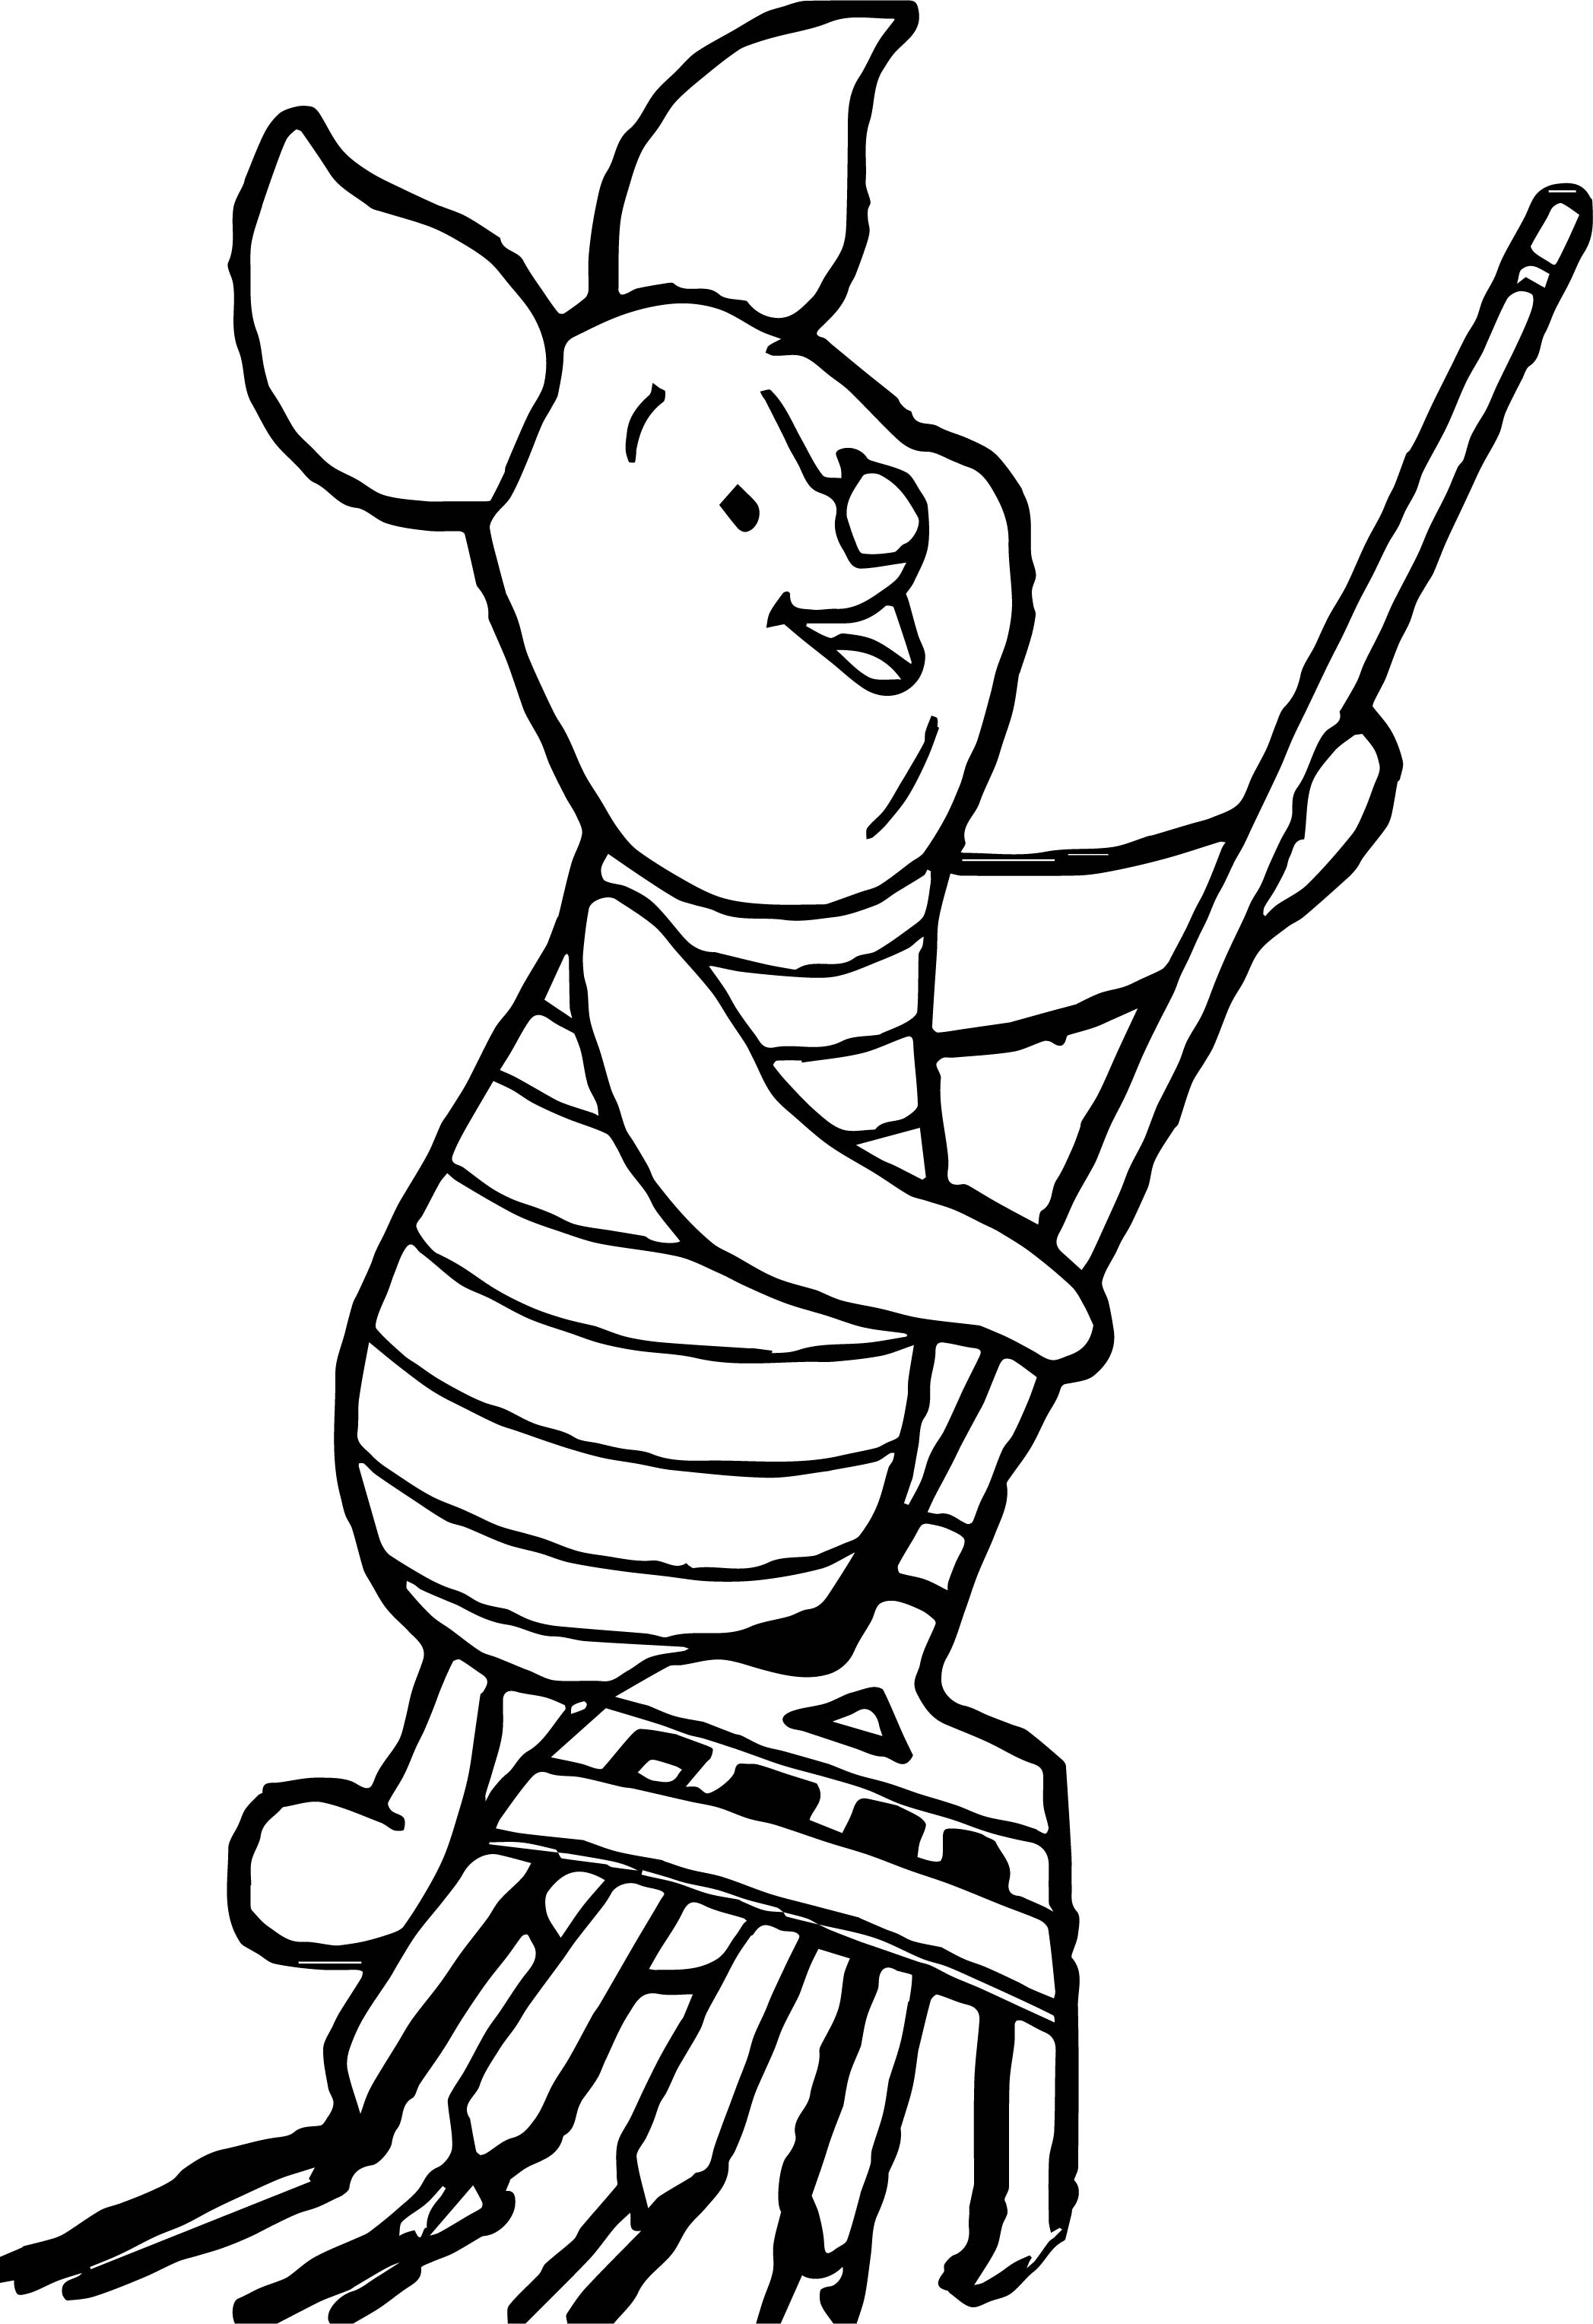 Walt Disney Cute Piglet Characters Coloring Page